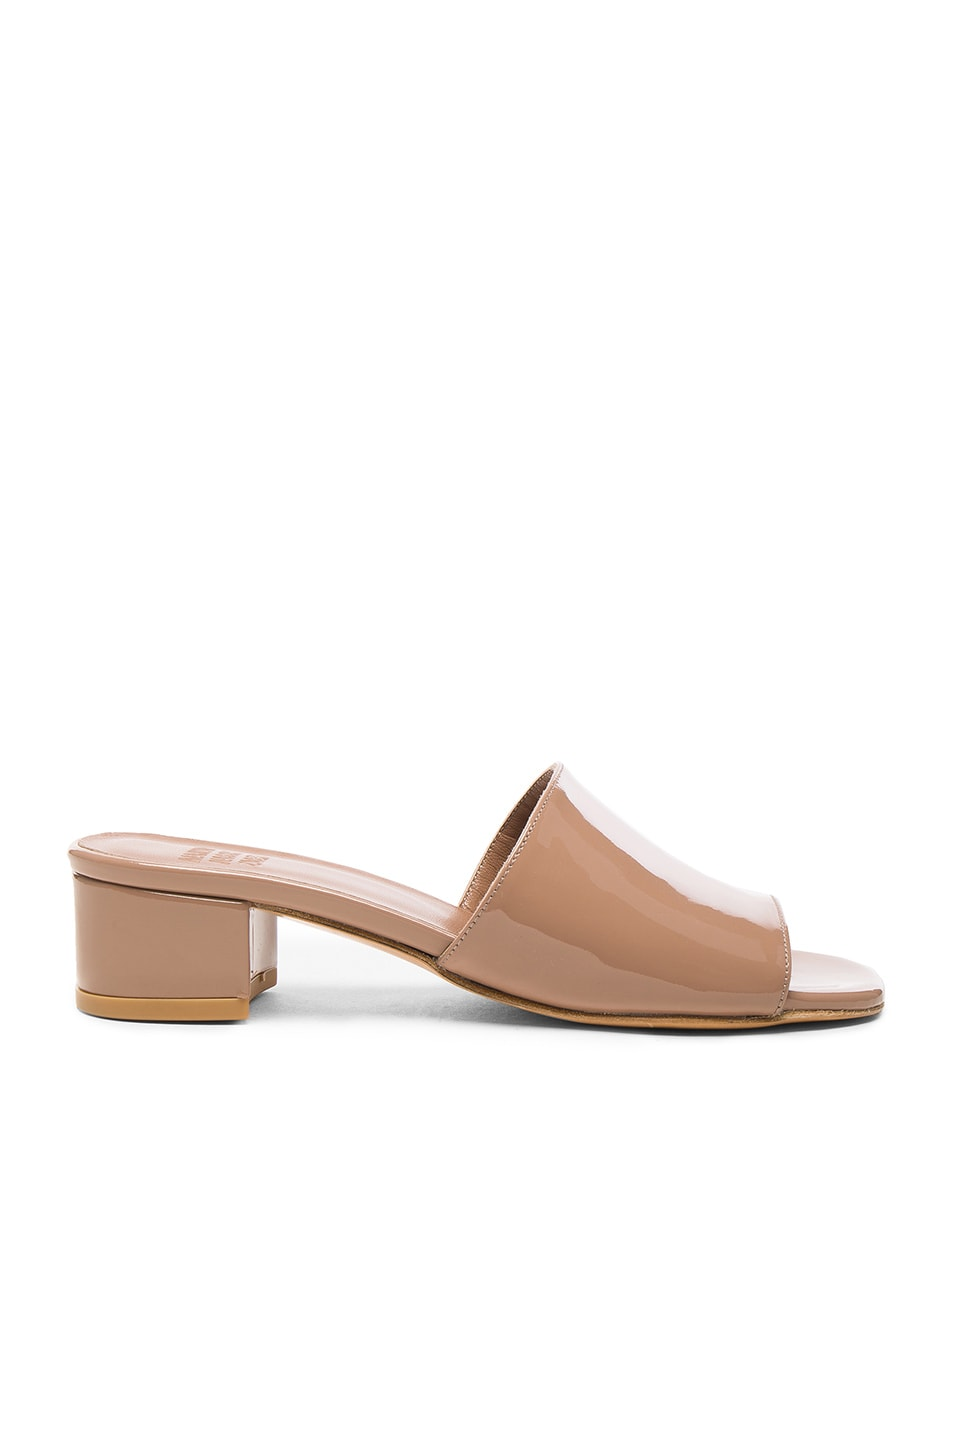 MARYAM NASSIR ZADEH Patent Leather Sophie Slide Heels at FORWARD